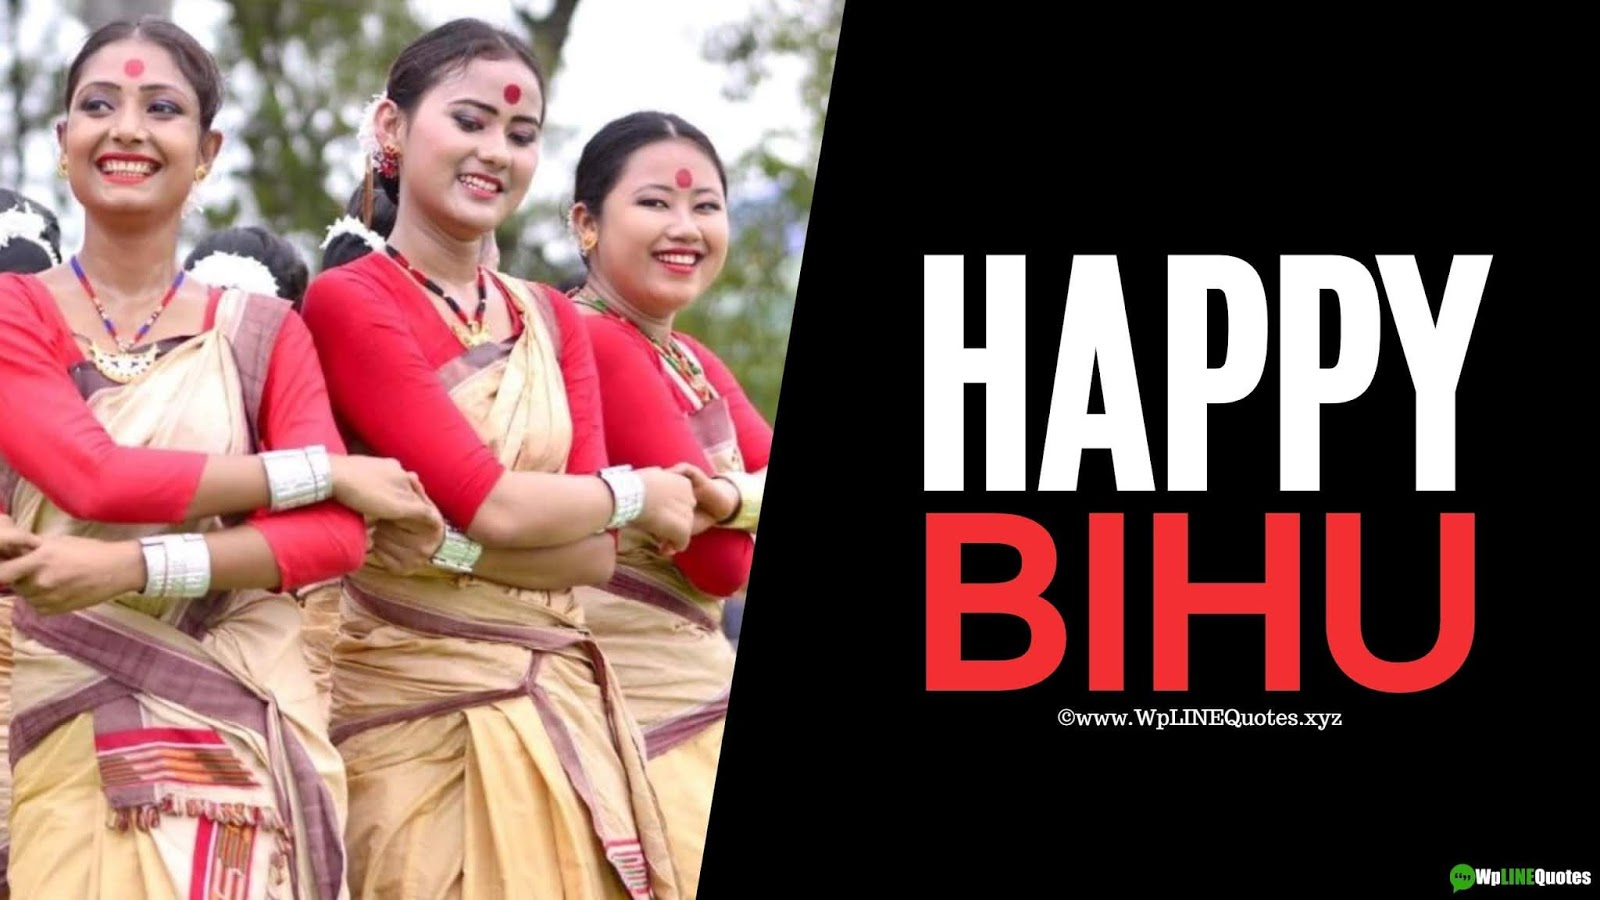 Bihu Wishes, Messages, Greetings, Quotes, History, Images, Photos, Pictures, Wallpaper For Whatsapp Status & Facebook